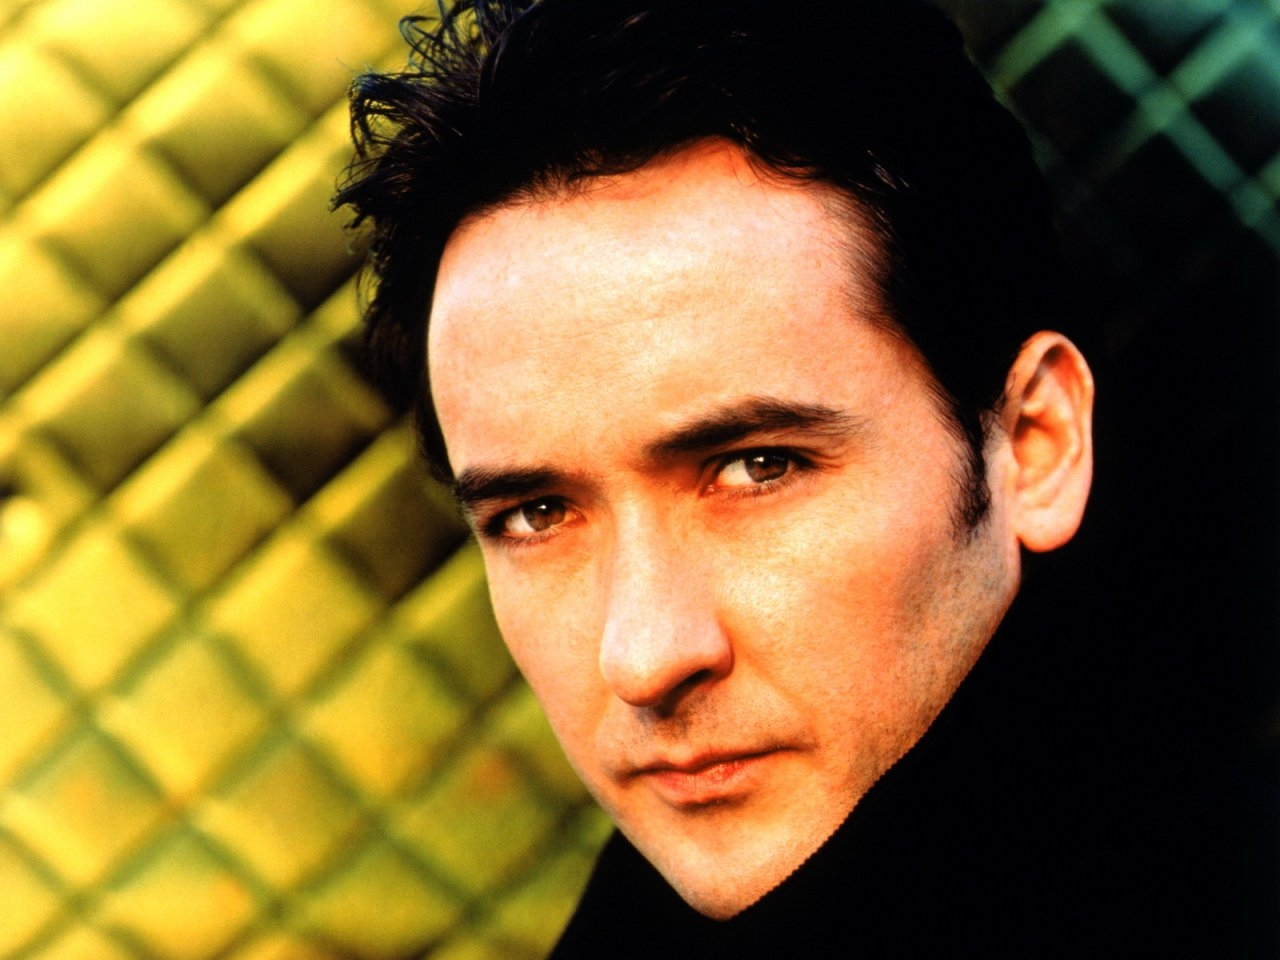 john cusack movies puter background 1562 1588 hd wallpapers